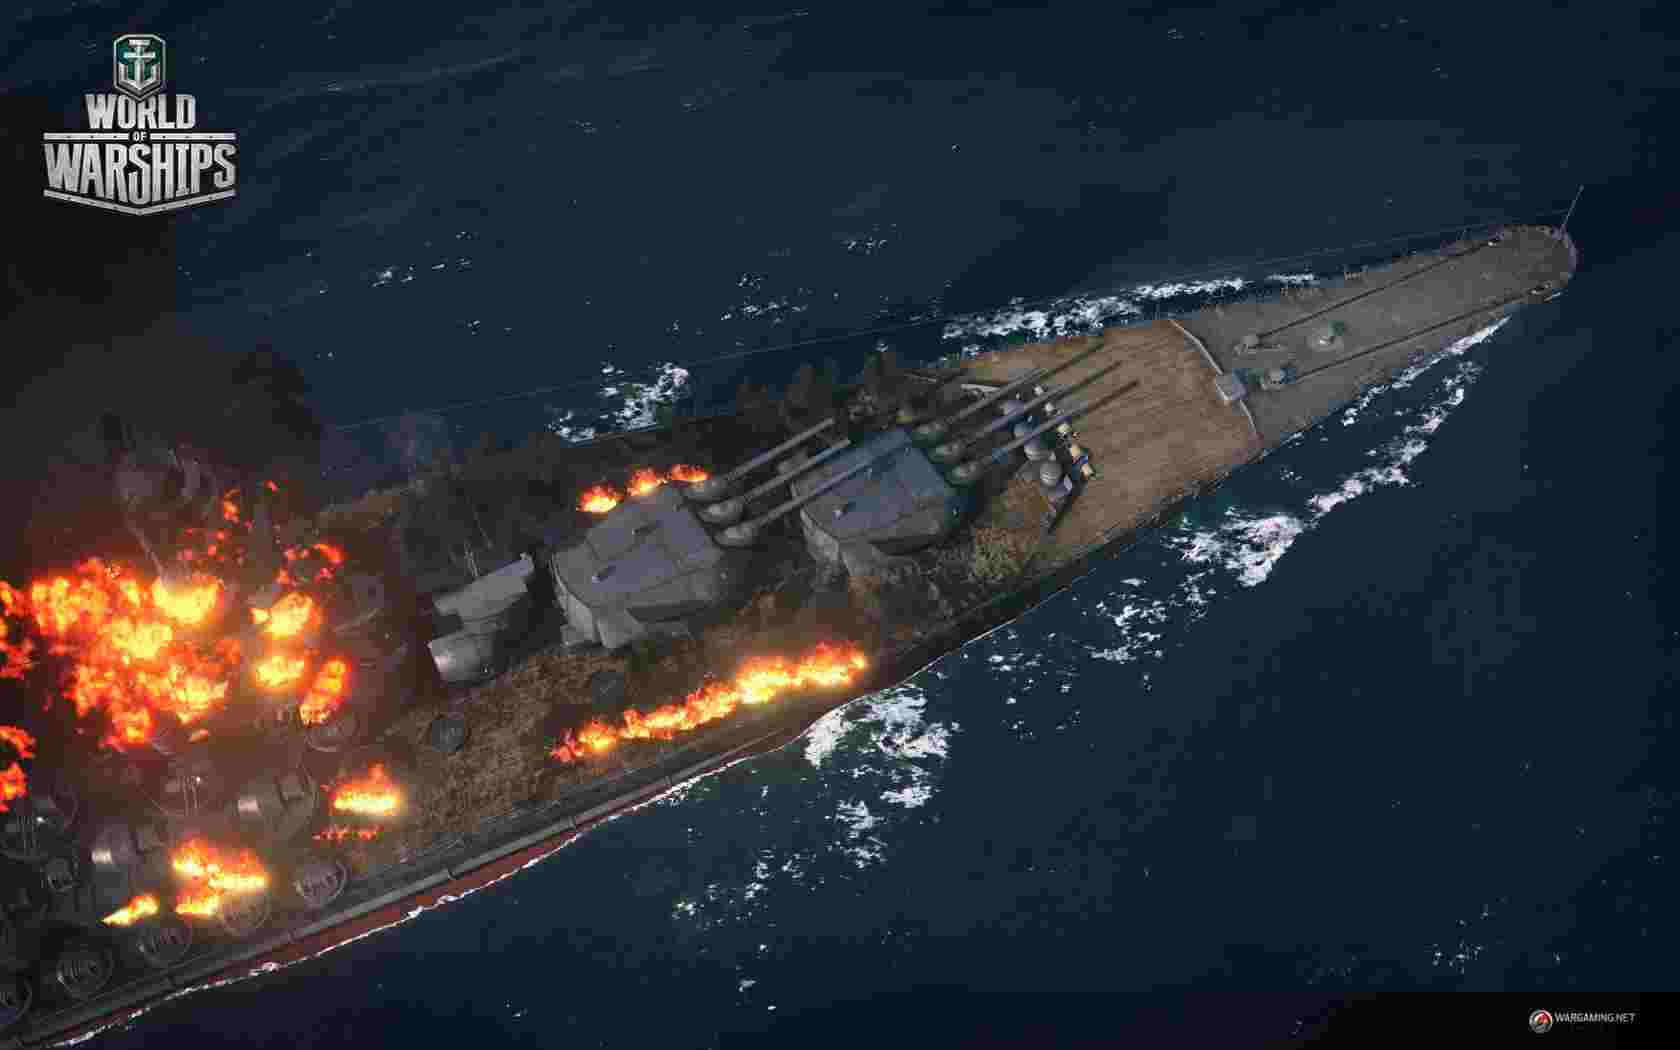 WoWS_Screens_CBT_Press_Release_Image_02